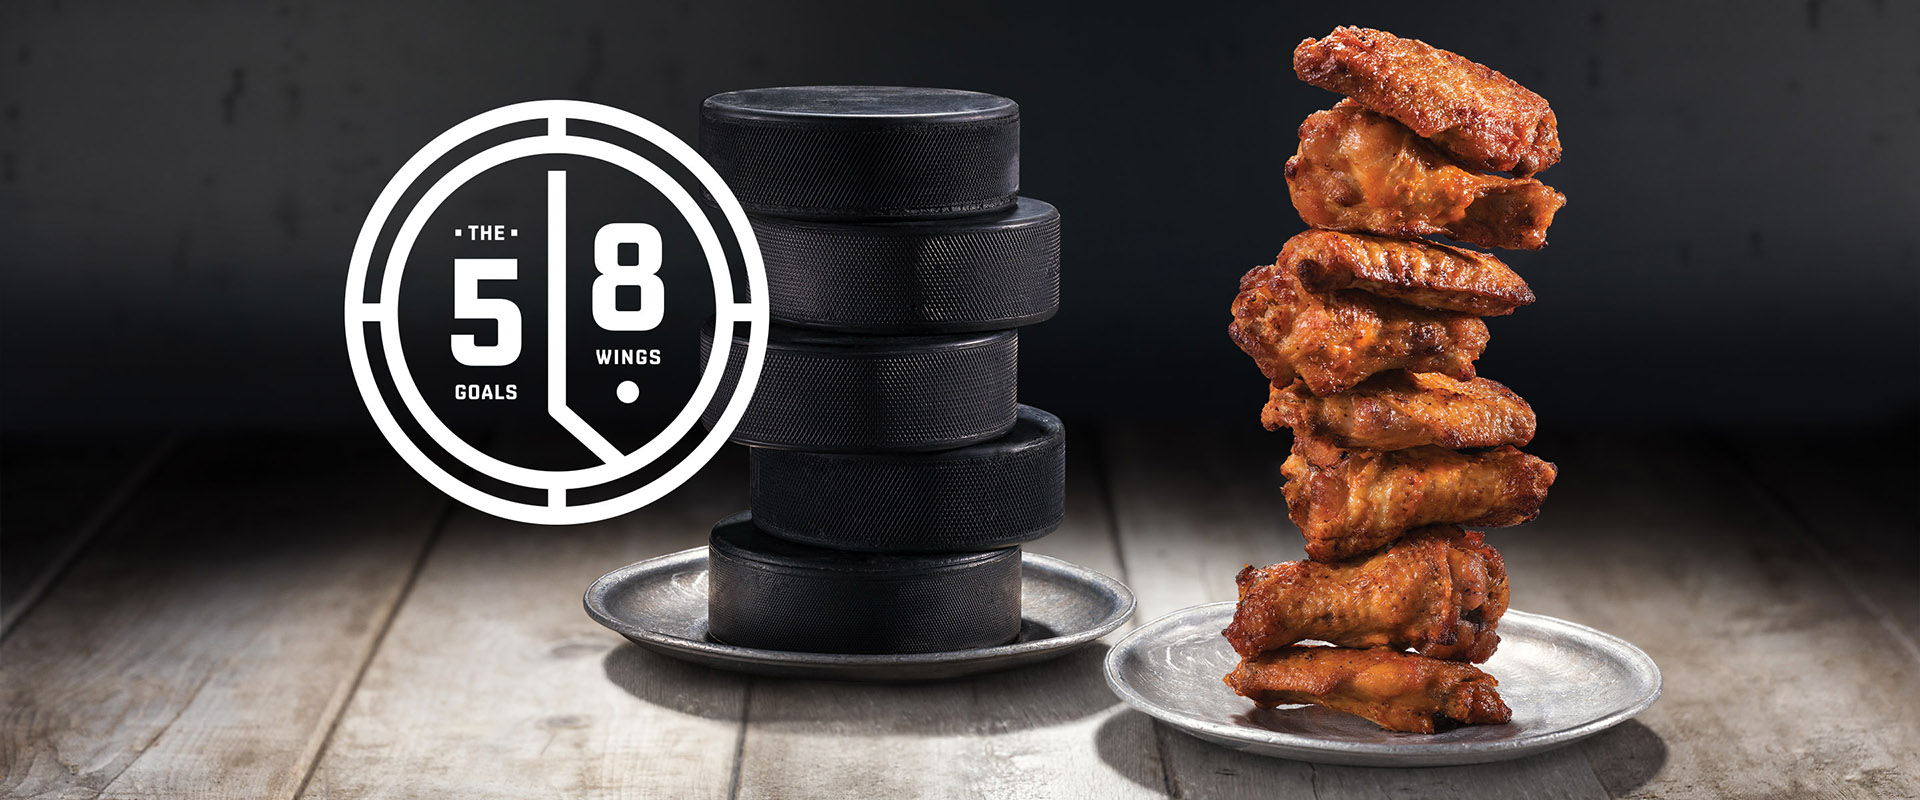 5 goals = 8 free wings